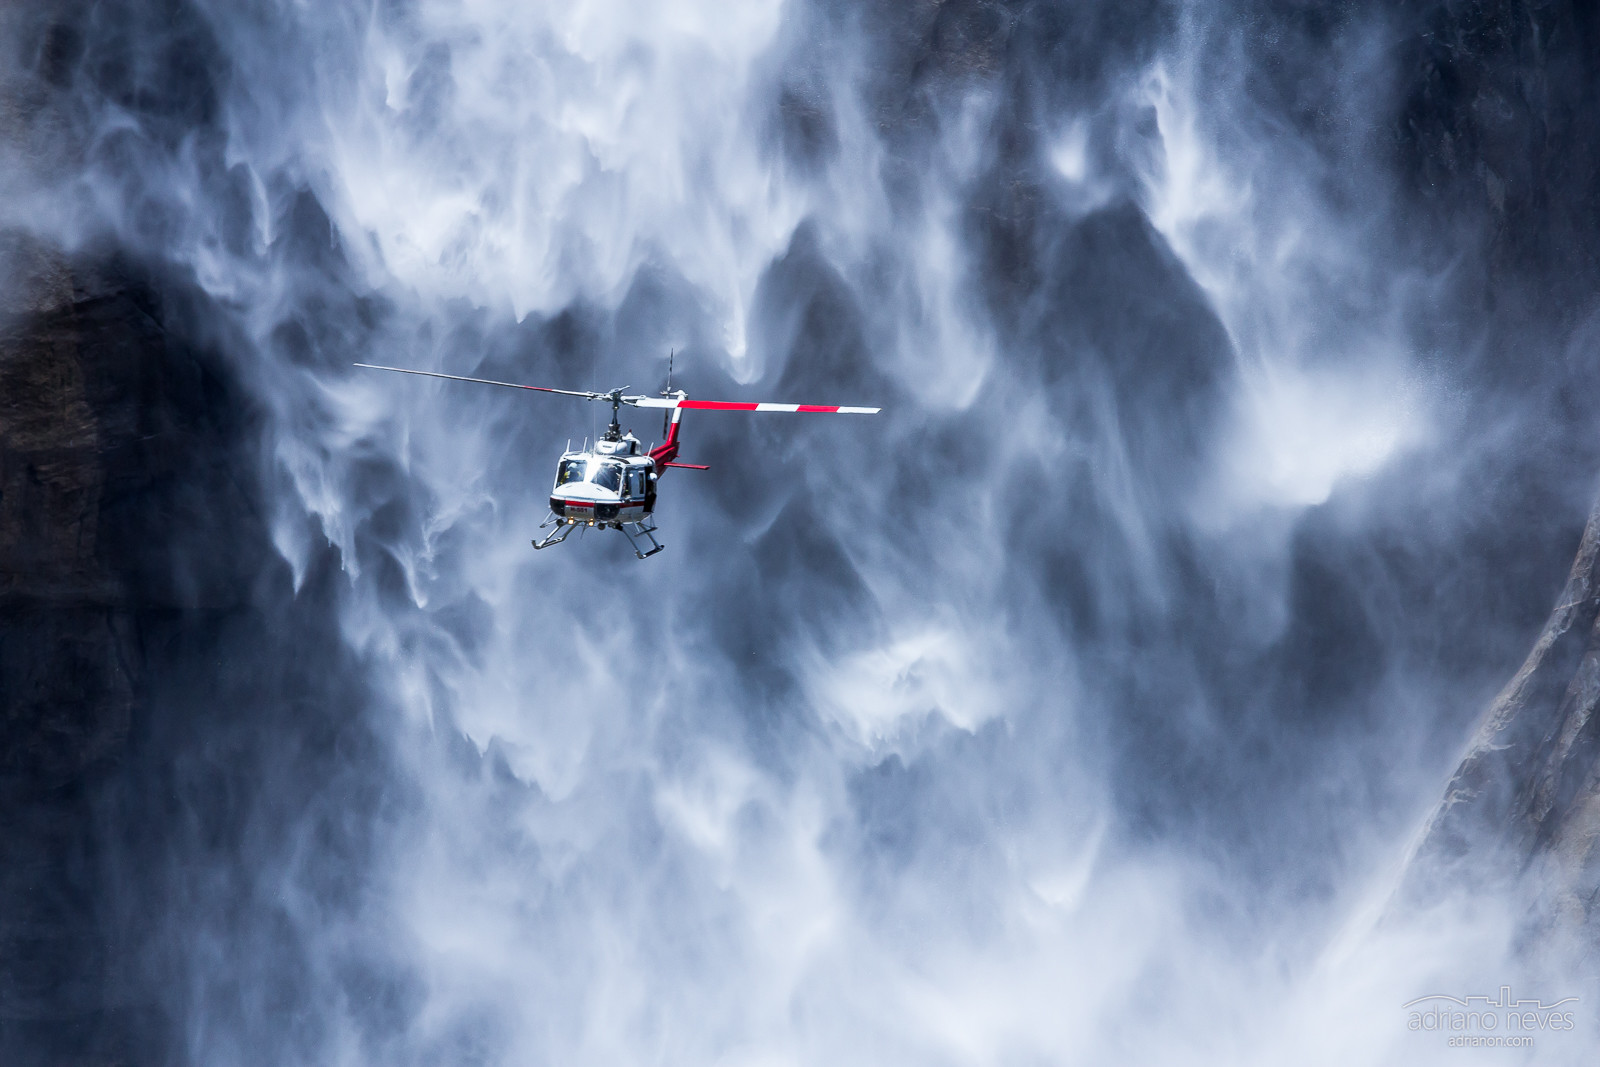 Dramatic freeze motion photograph of an helicopter in front of a giant waterfall - Adriano Neves - @acseven - adrianon.com